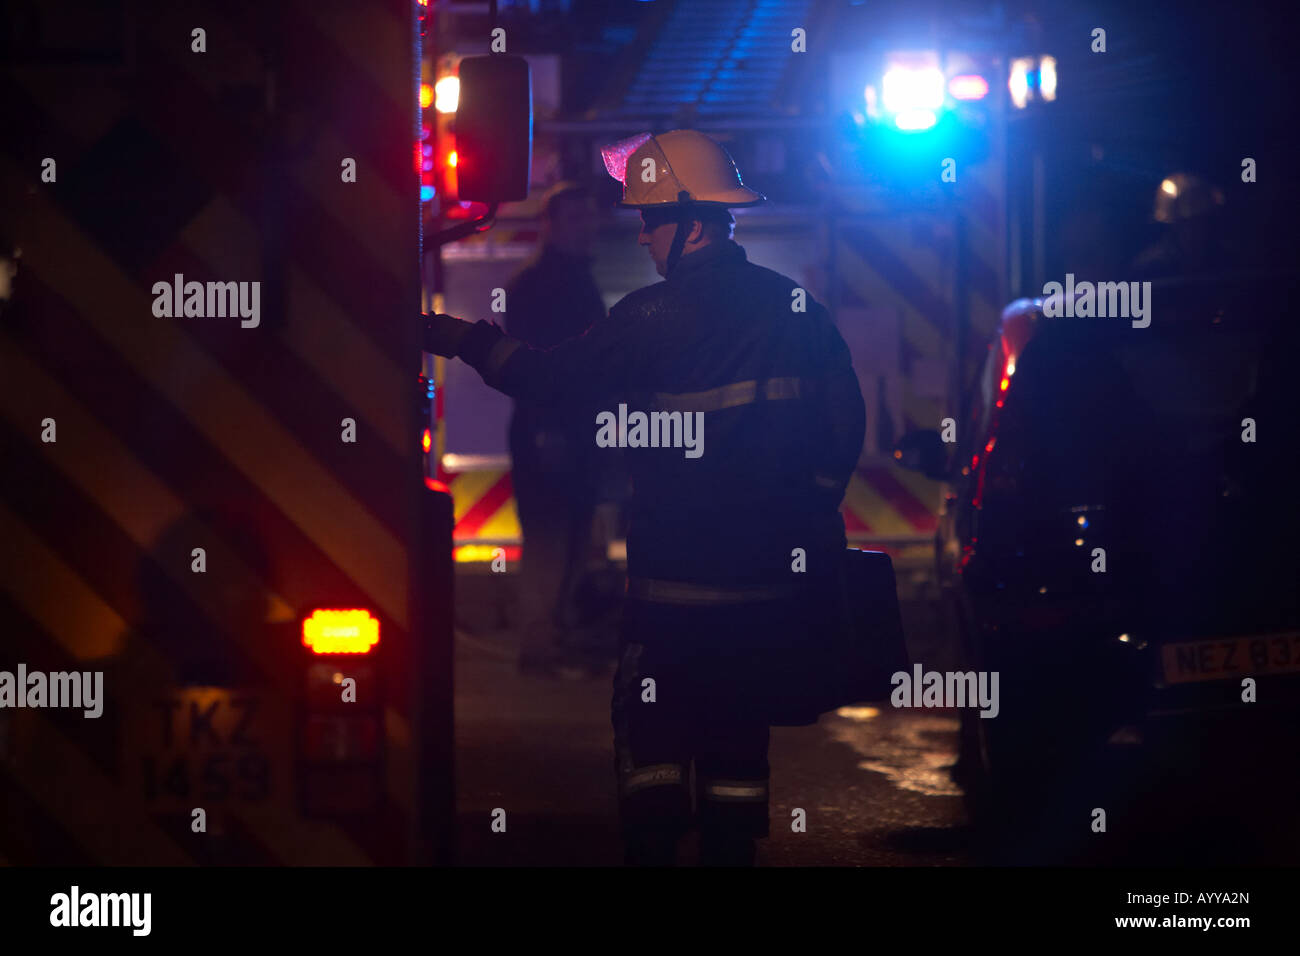 firefighter wearing a helmet and protective overall carrying a case opens door of a fire engine on a street at night - Stock Image